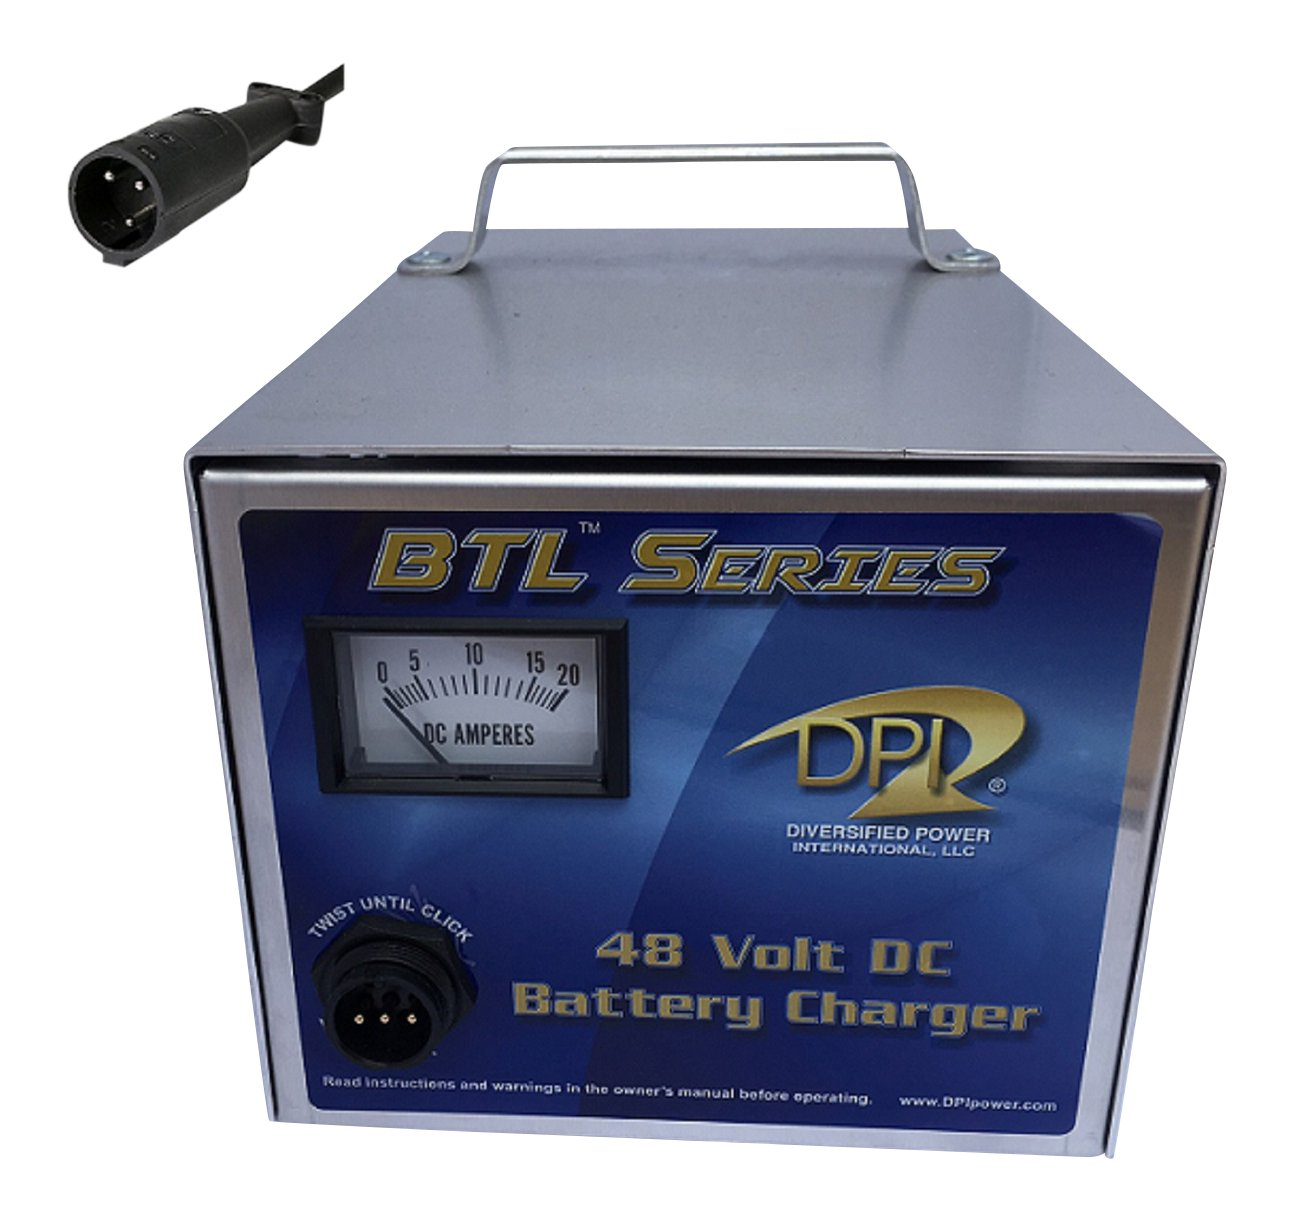 Amazon.com : 48volt 15amp Golf Cart Power Supply charger with Club car  3-pin round connector : Golf Cart Accessories : Sports & Outdoors